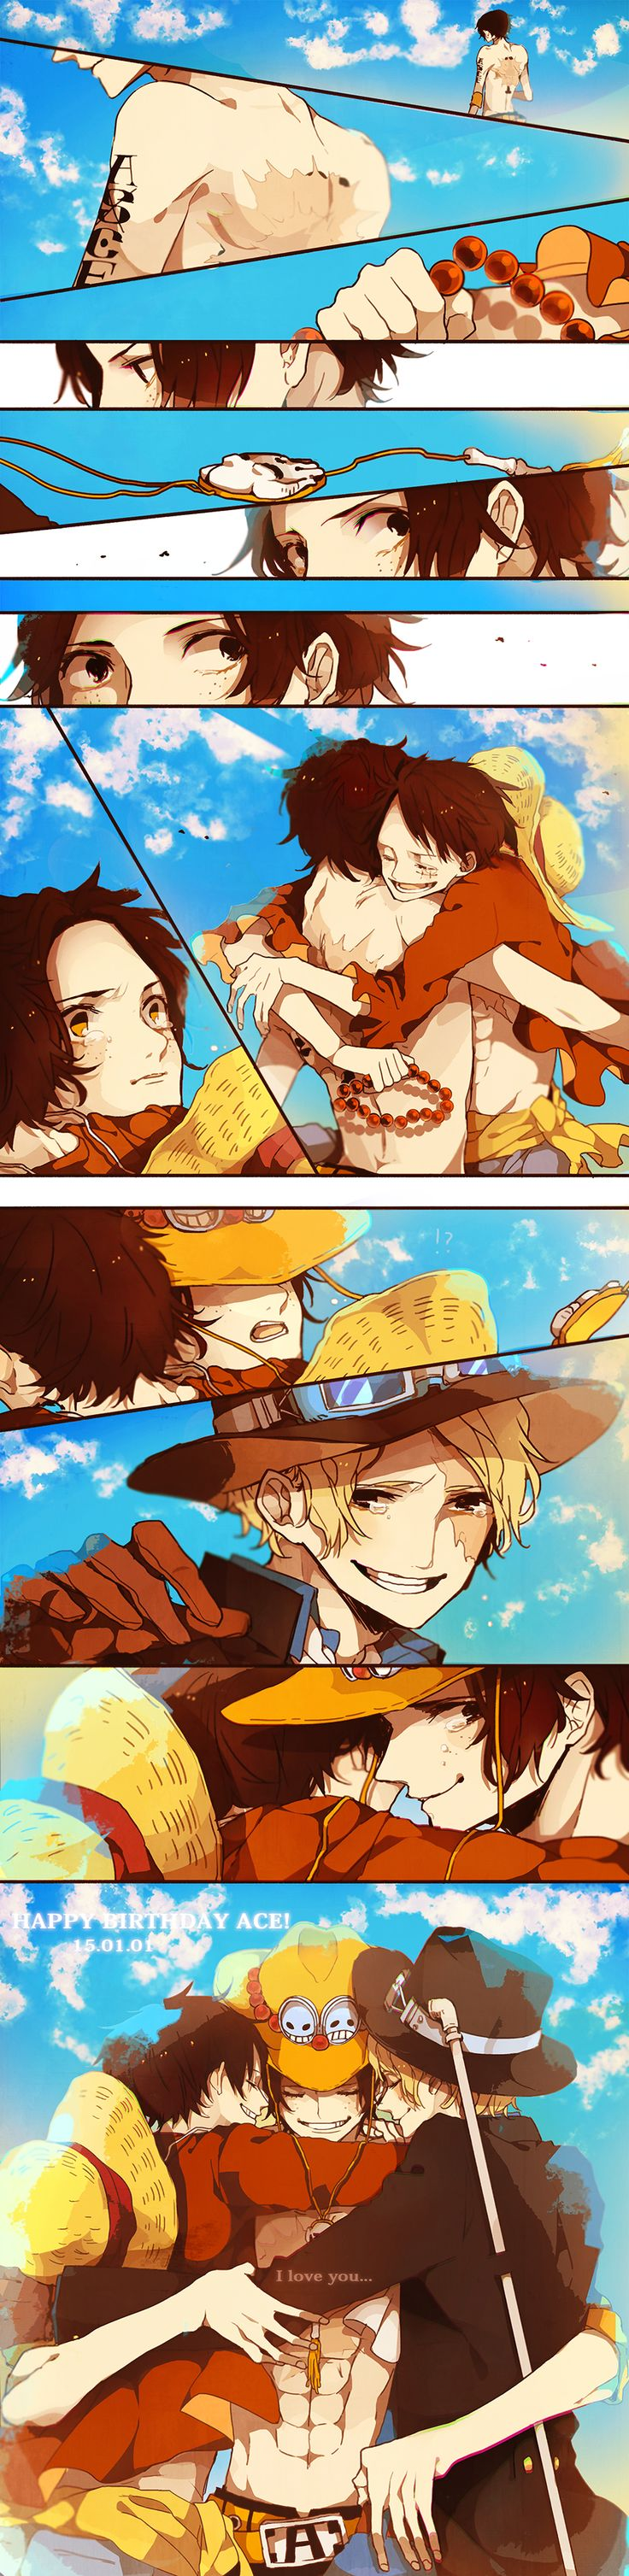 Fanart, ONE PIECE, Monkey D. Luffy, Comic, Portgas D. Ace, Sabo